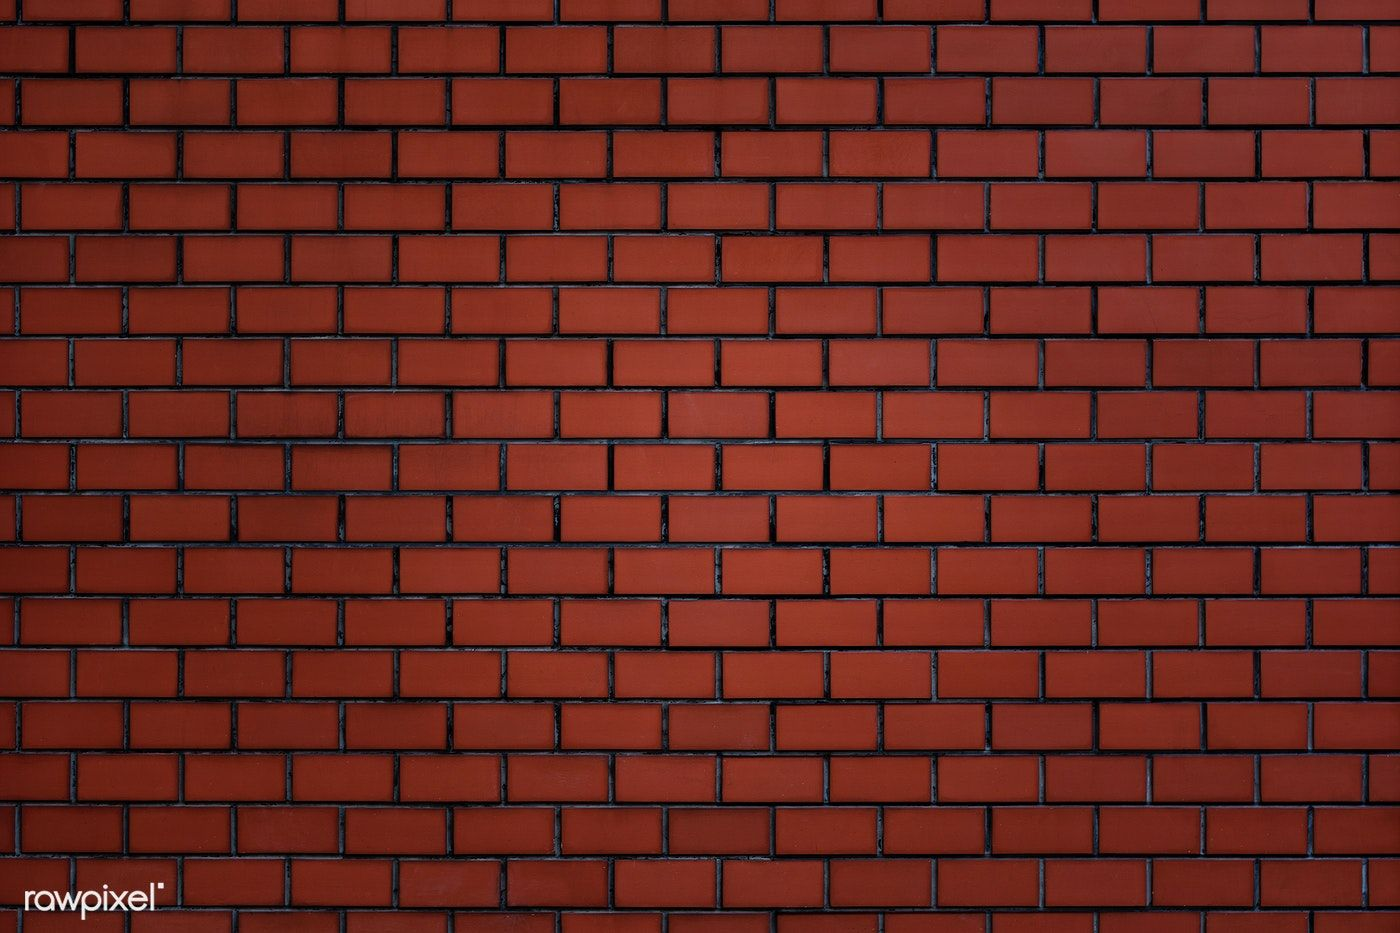 Brownish Red Brick Wall Textured Background Free Image By